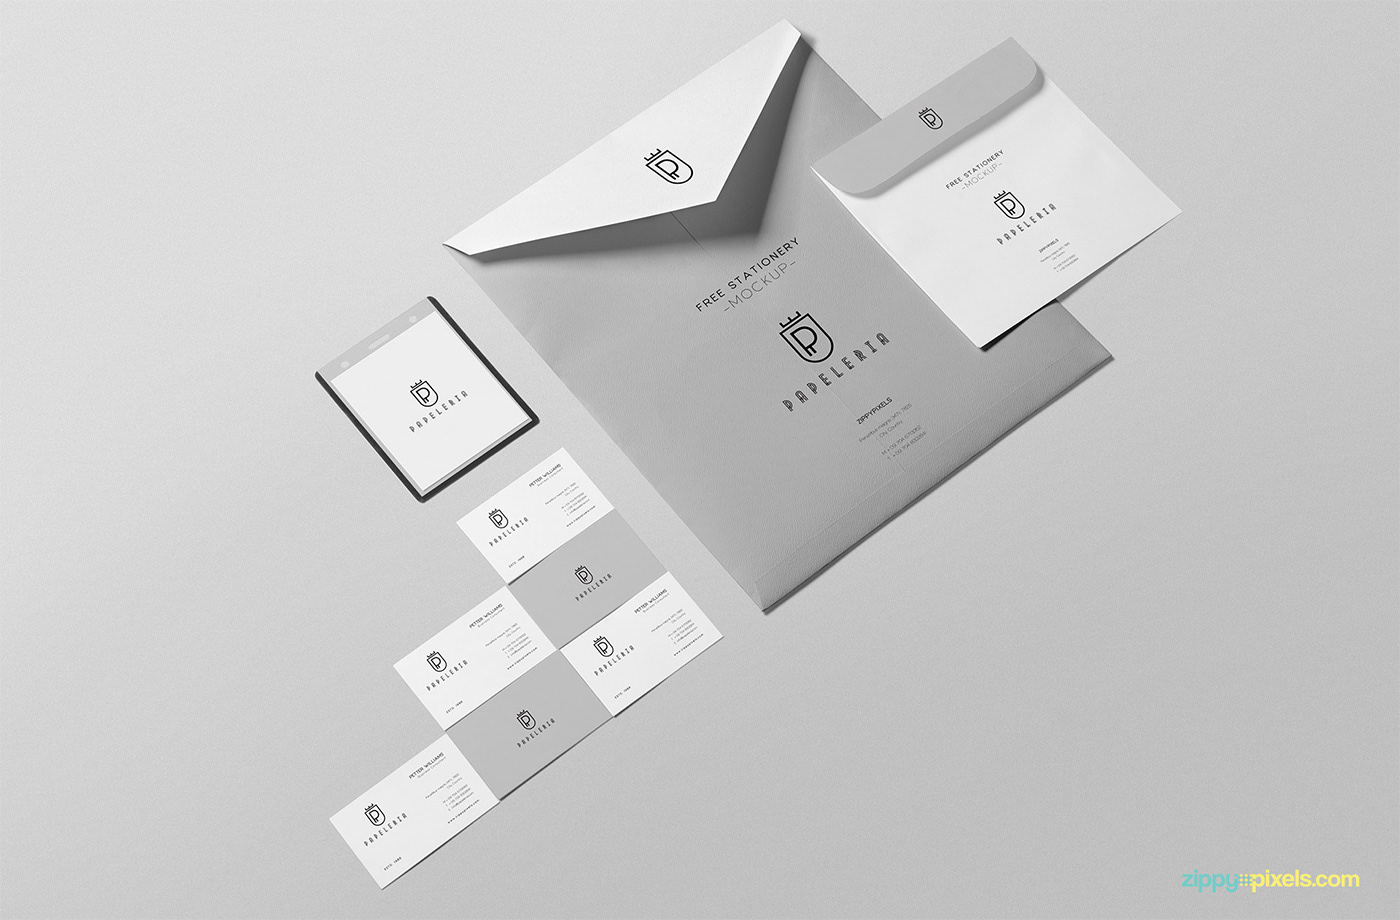 Please Click Here To Download This Free Beautiful Envelope Mockup PSD